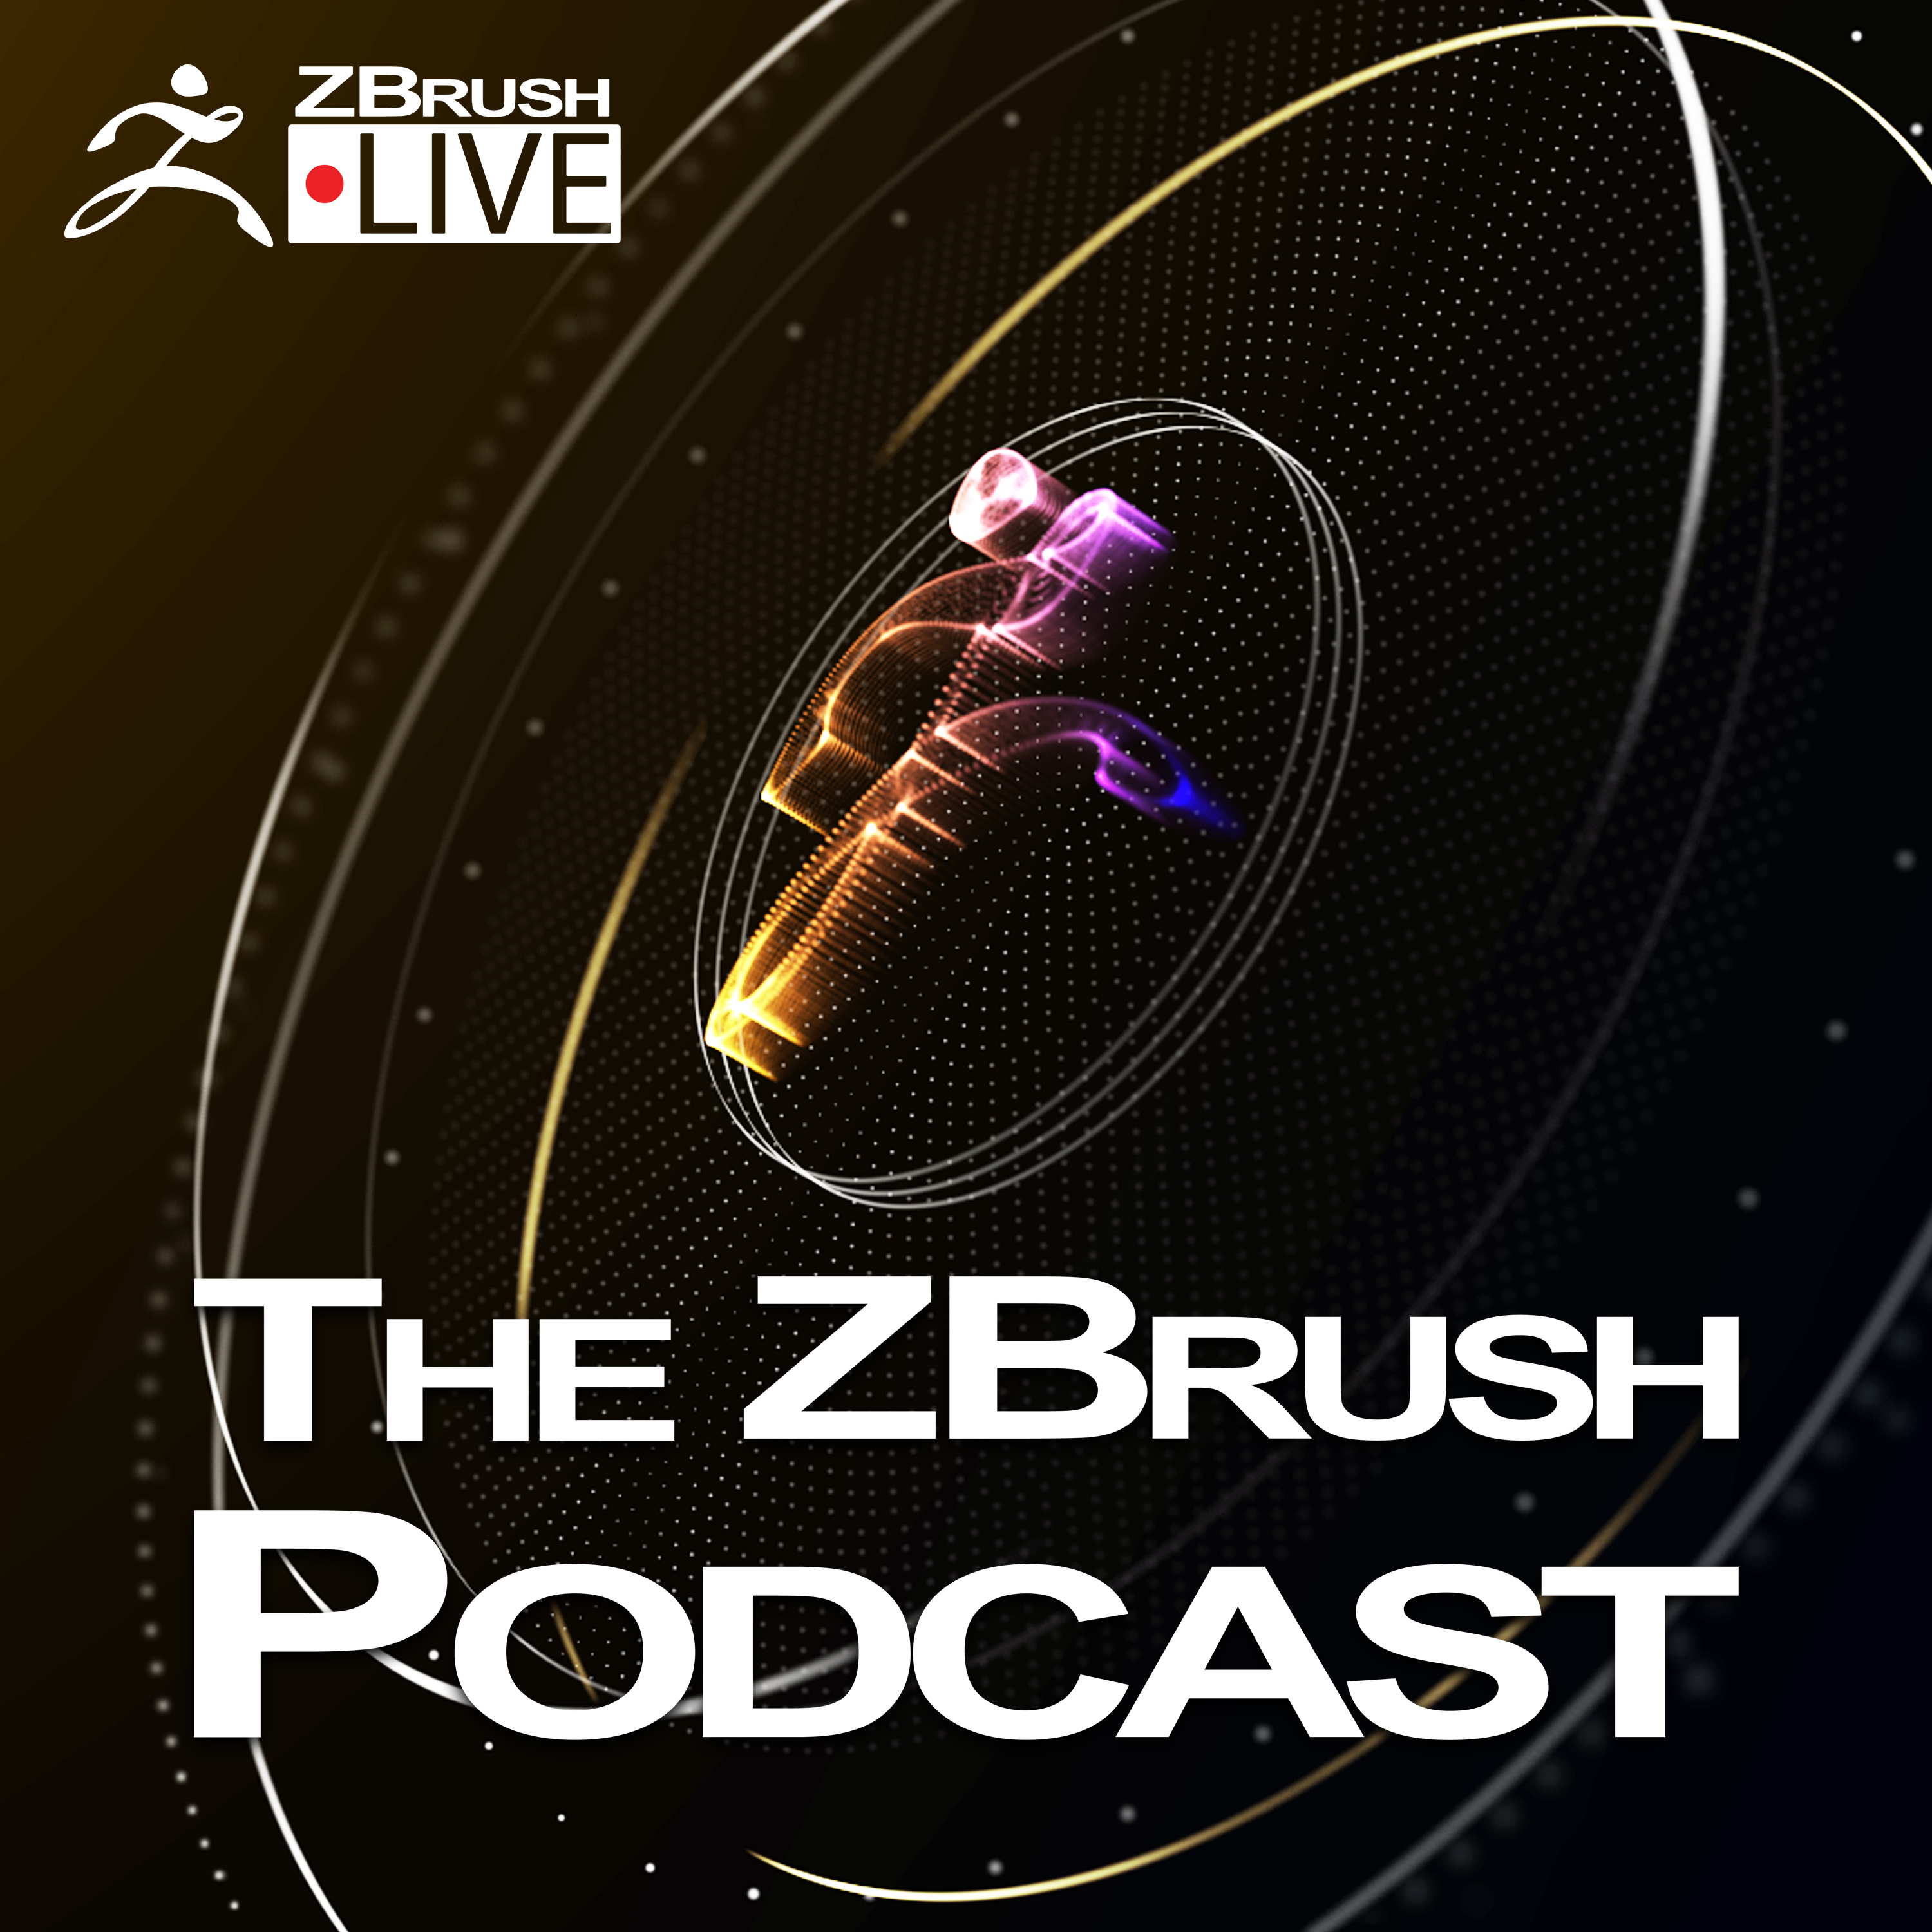 The ZBrush Podcast show art